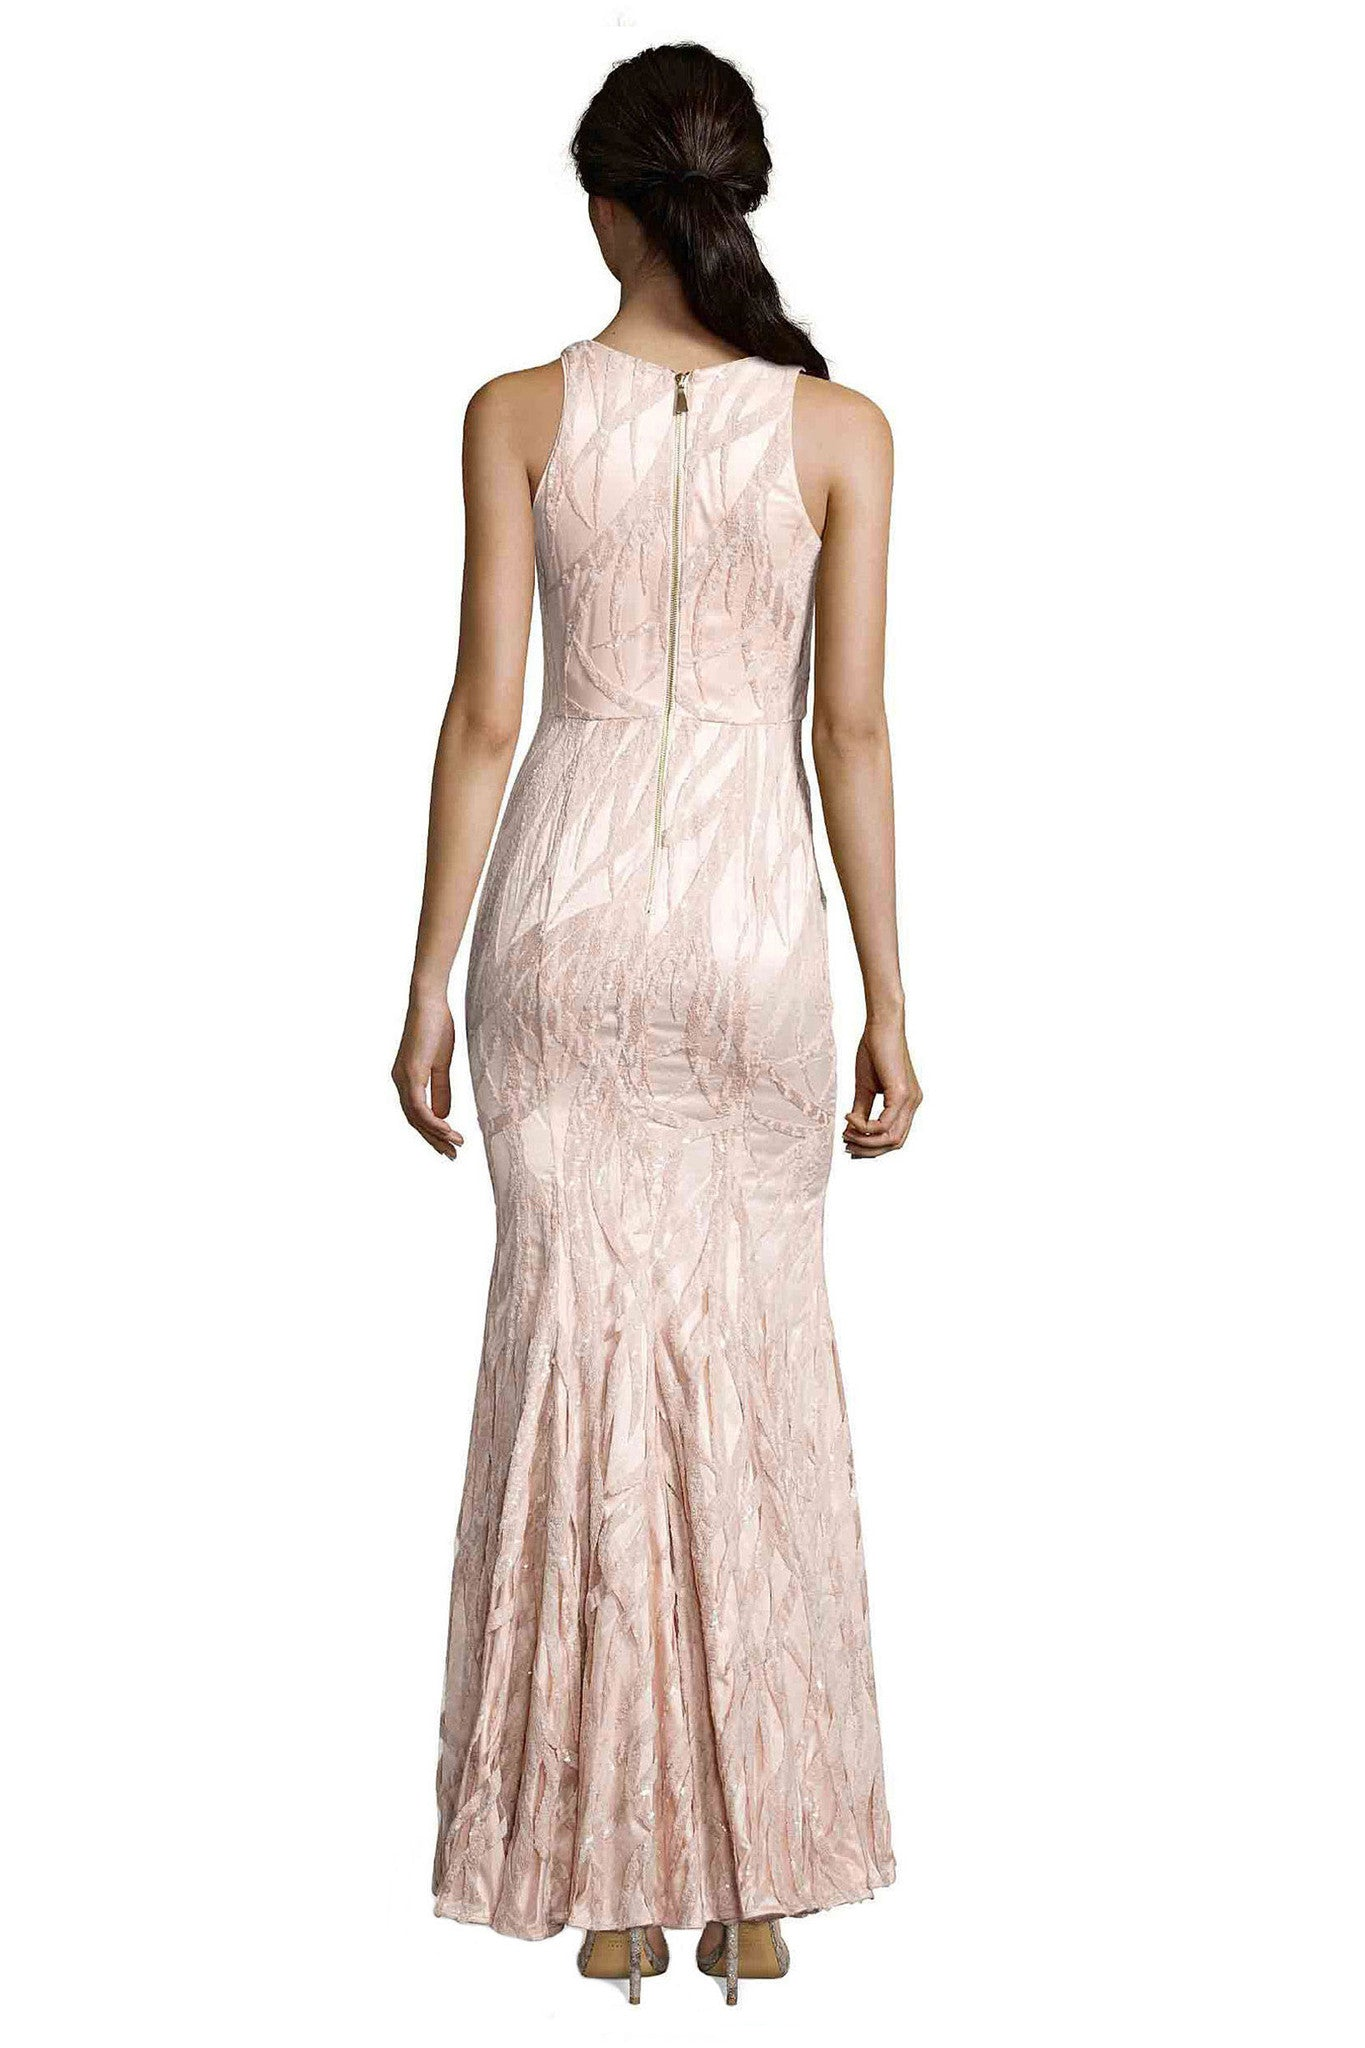 Jay Godfrey Light Pink Sequin Gown - Back View